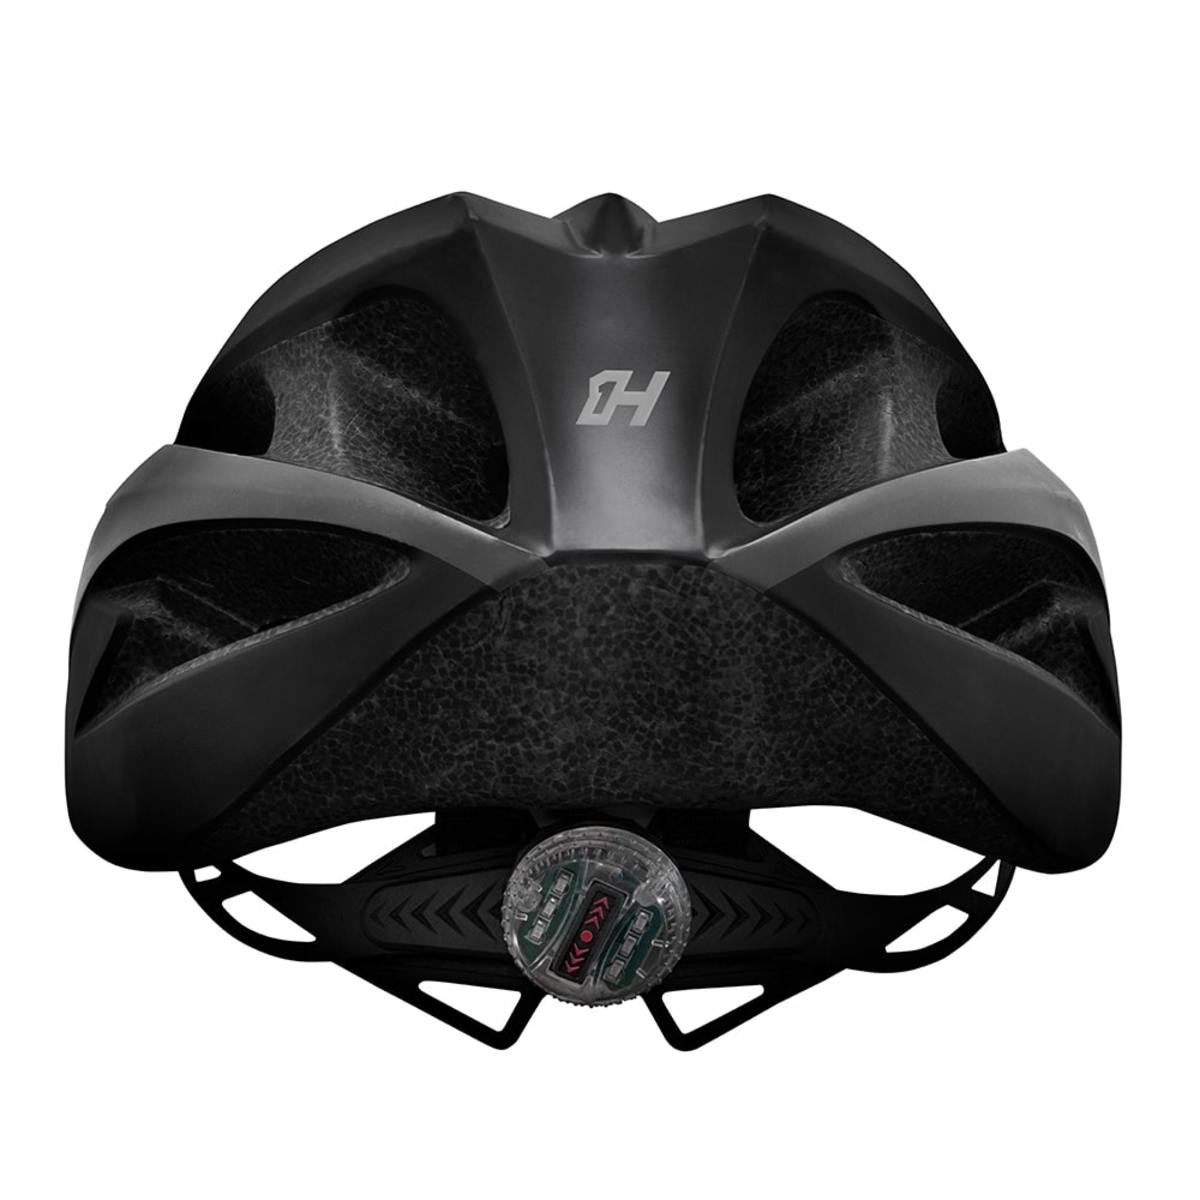 Capacete Bike Mtb High One Win c/ Led - Preto / Cinza